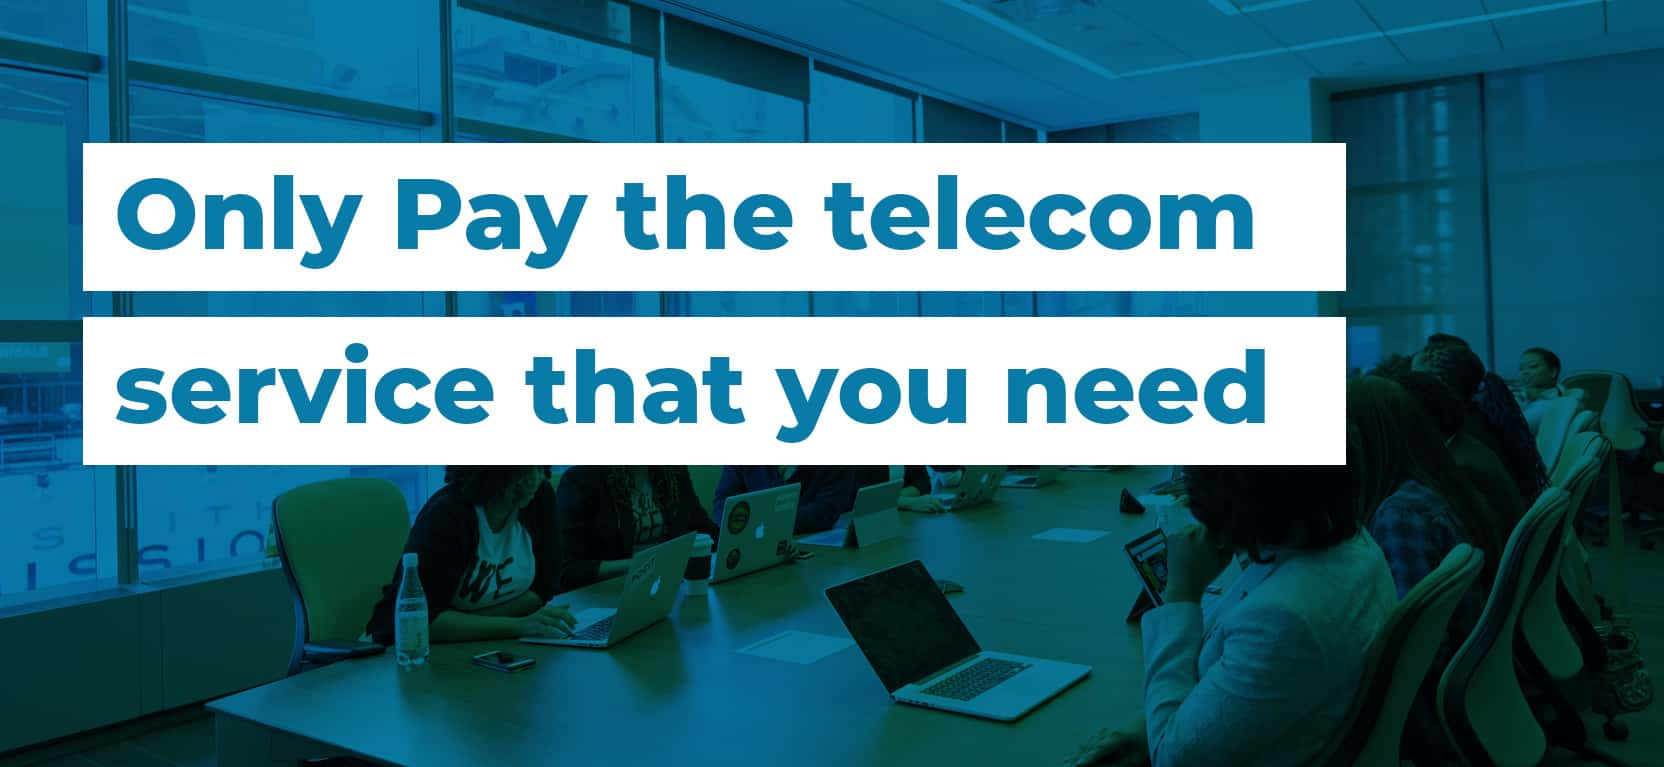 59 Only Pay the telecom service that you need3